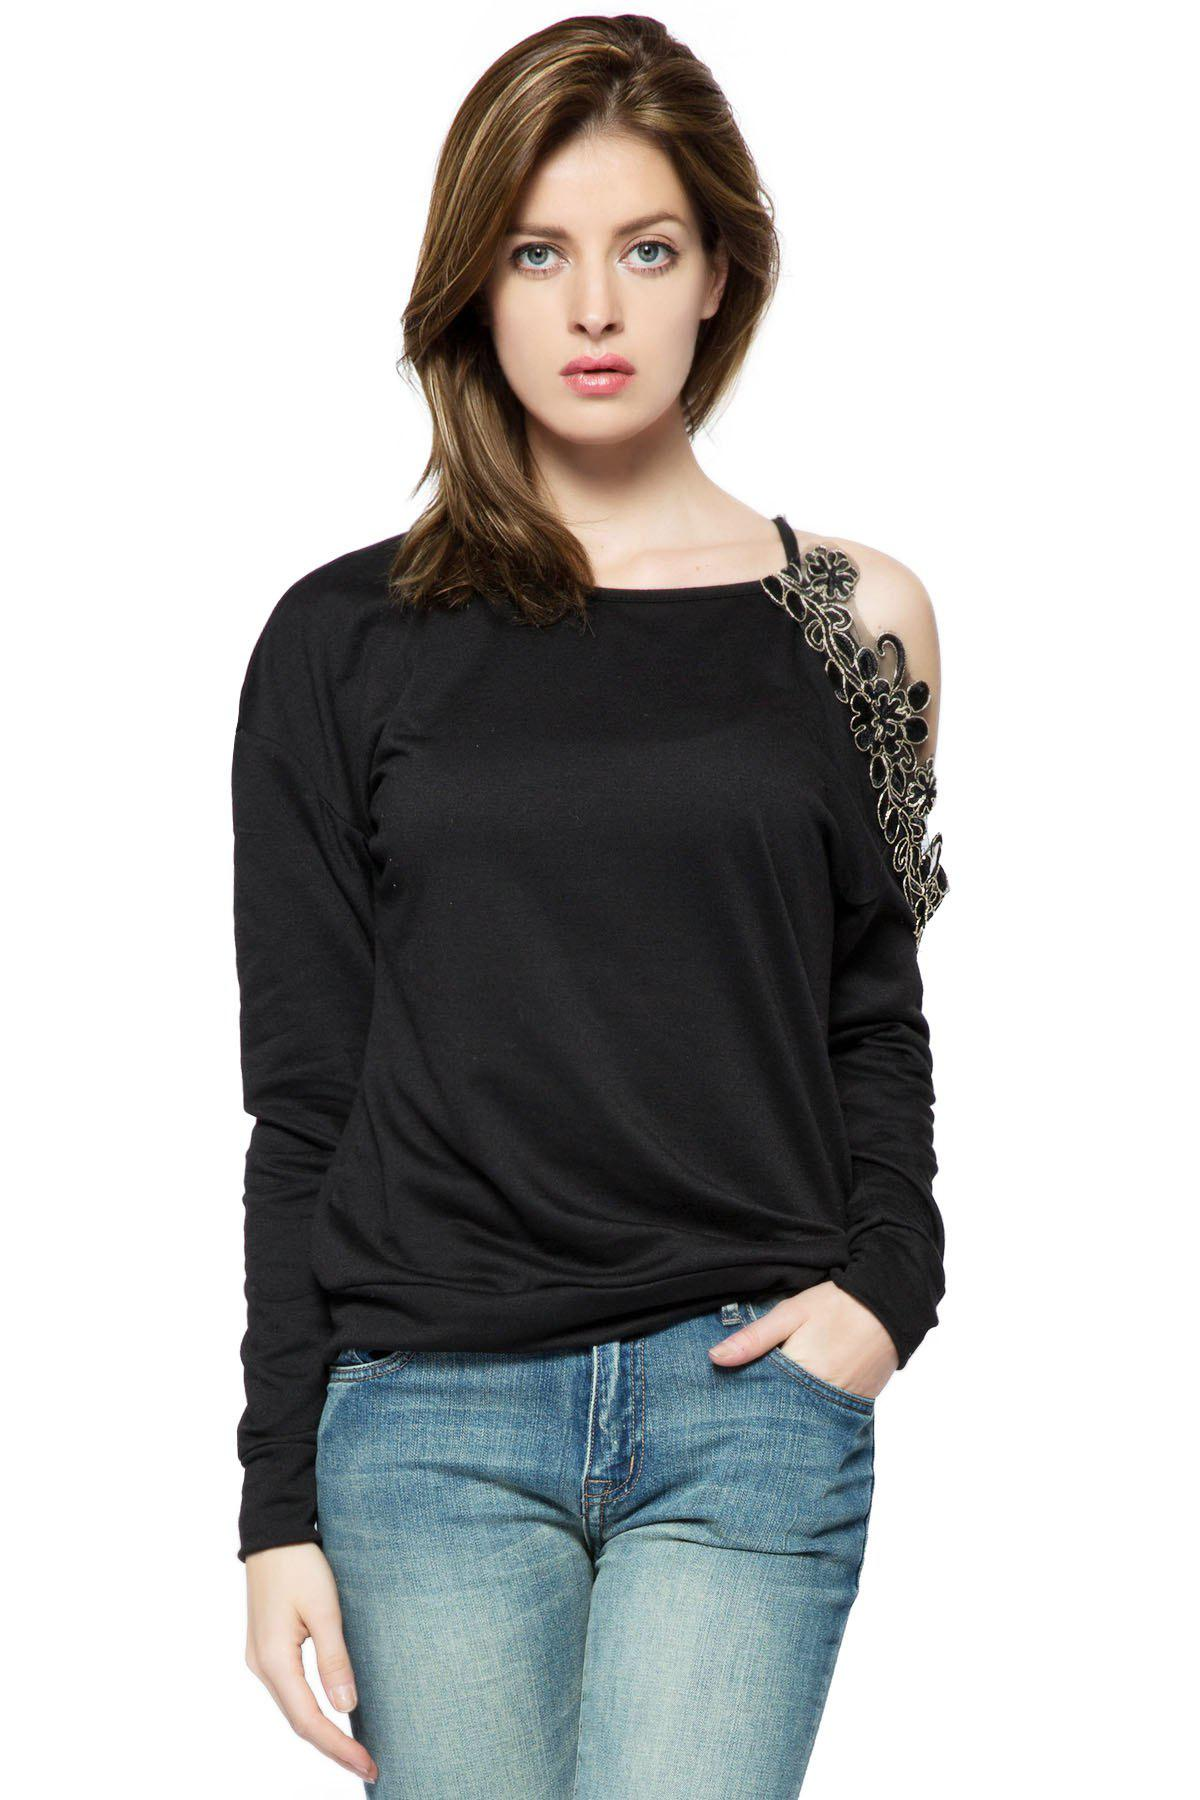 Stylish Round Collar Long Sleeve Floral Embroidery Off-The-Shoulder Women's Sweatshirt - BLACK 2XL